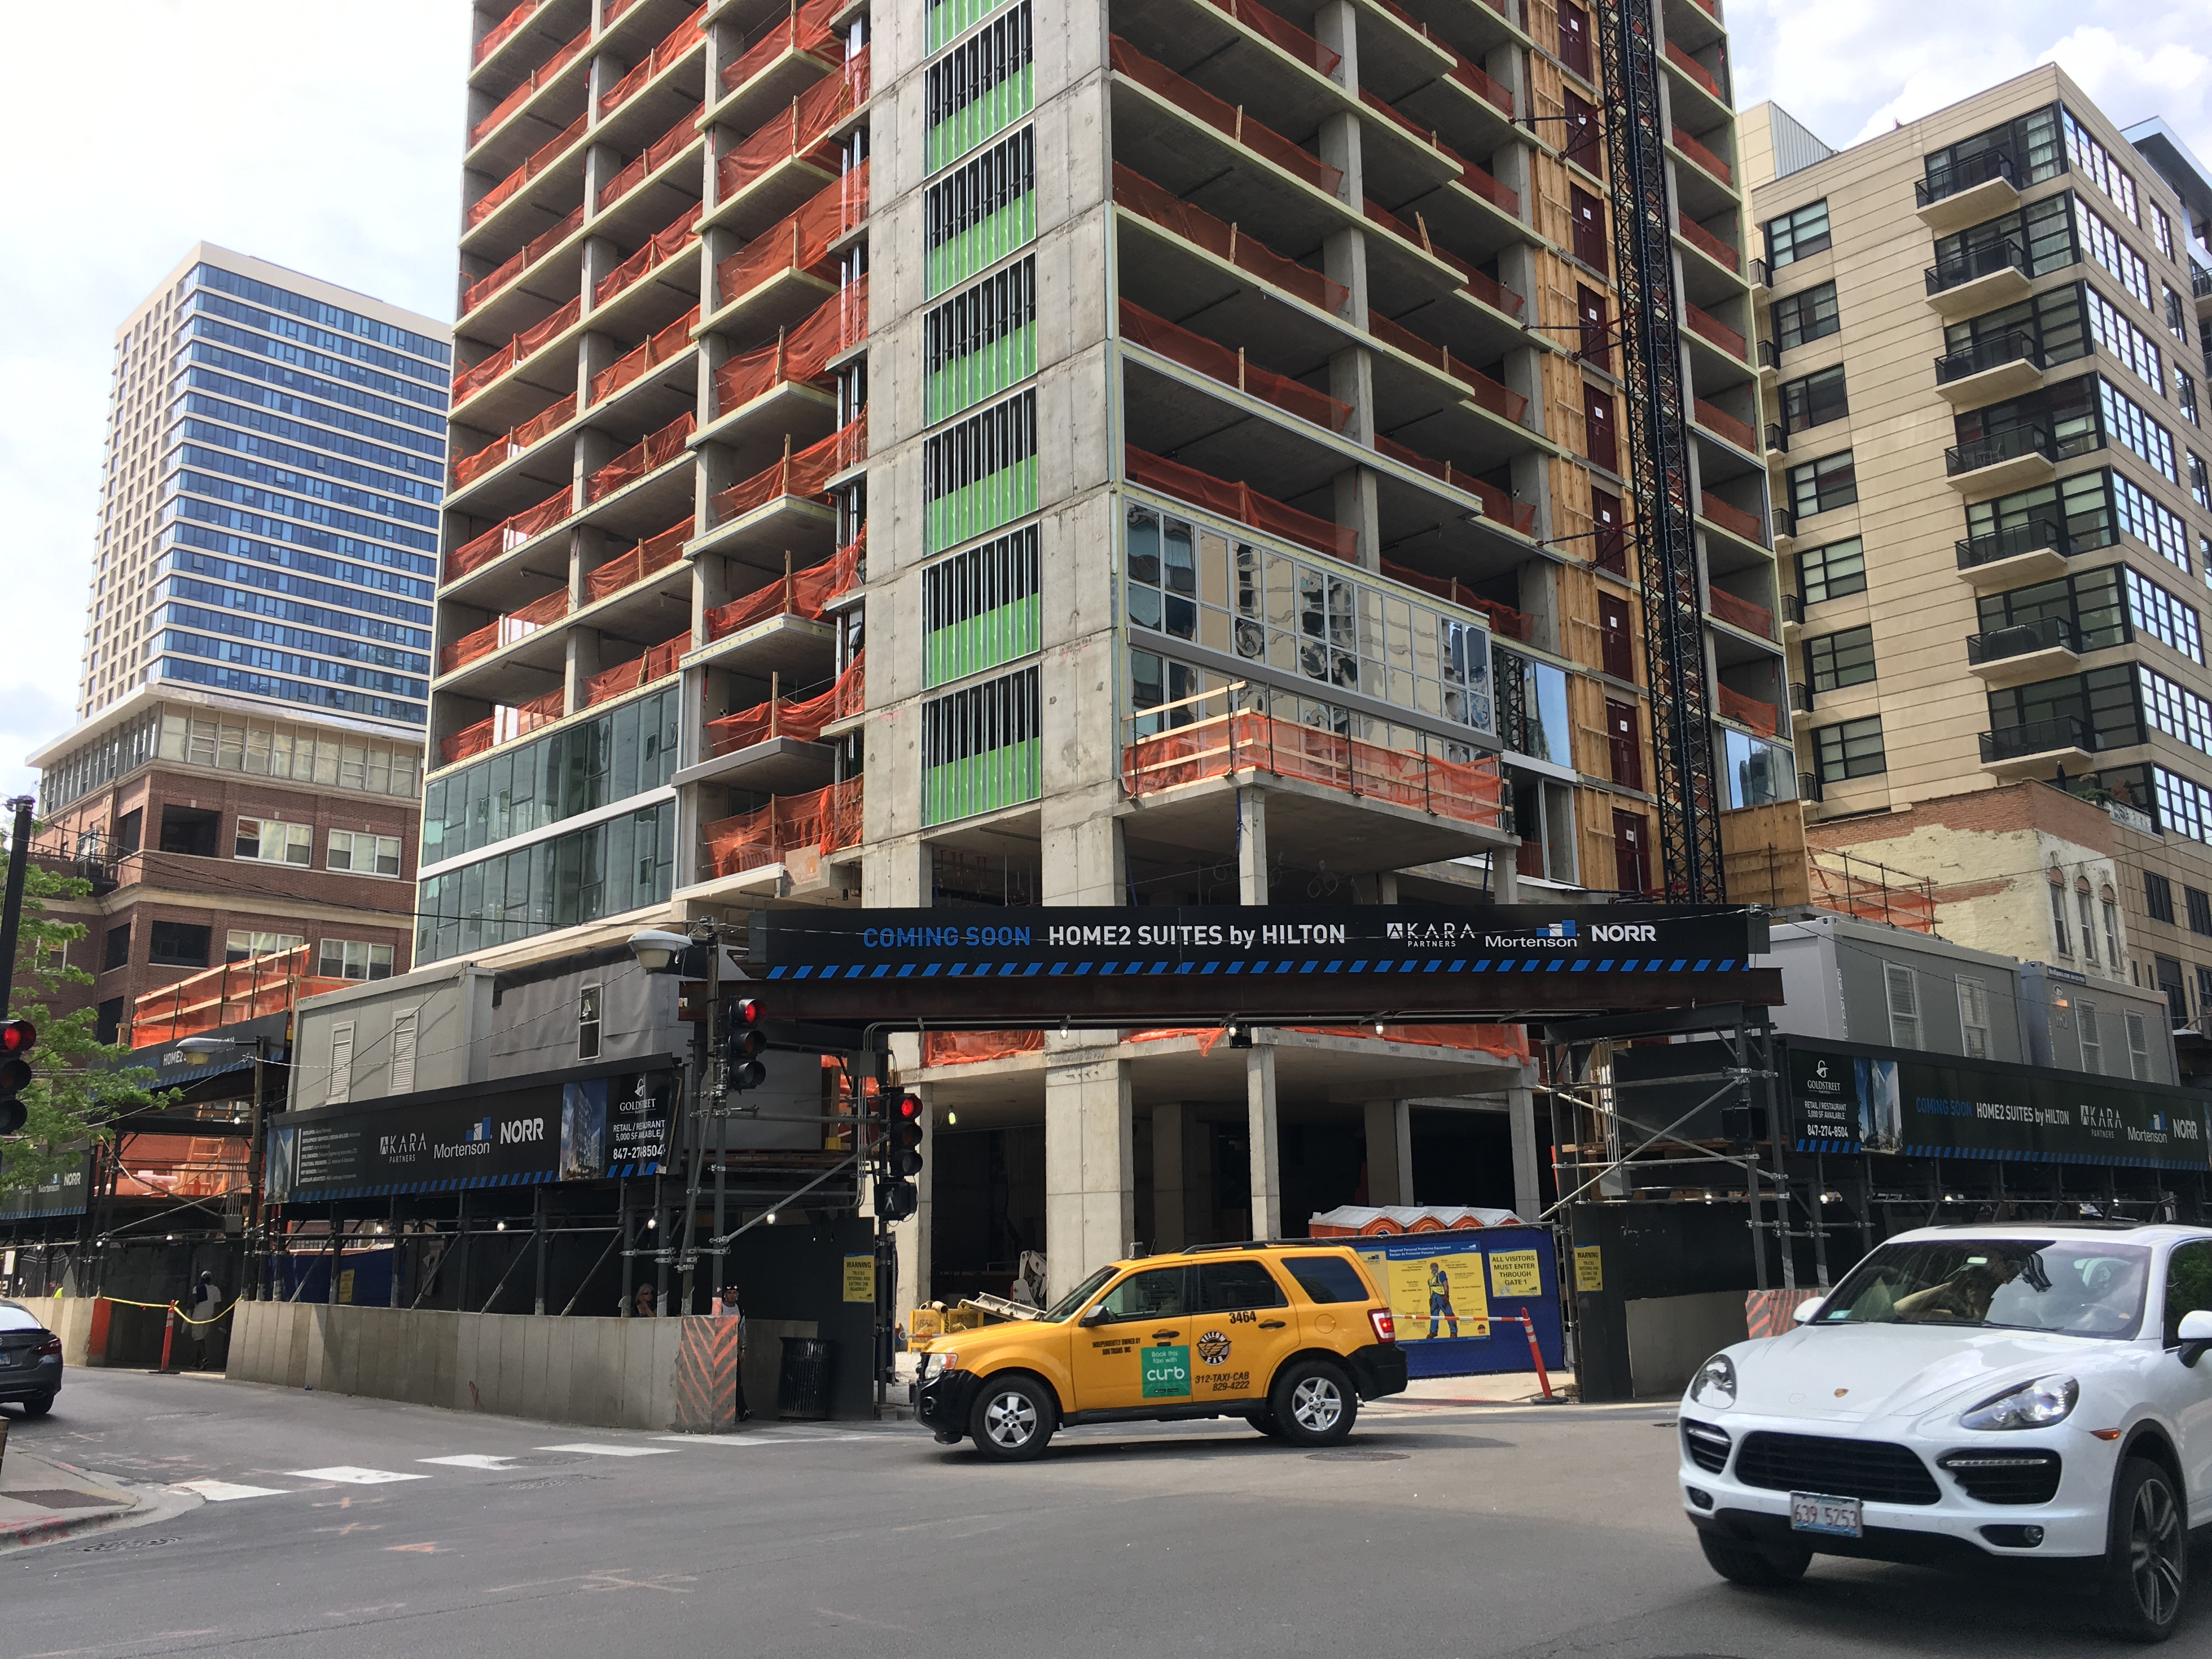 Home2 Suites River North